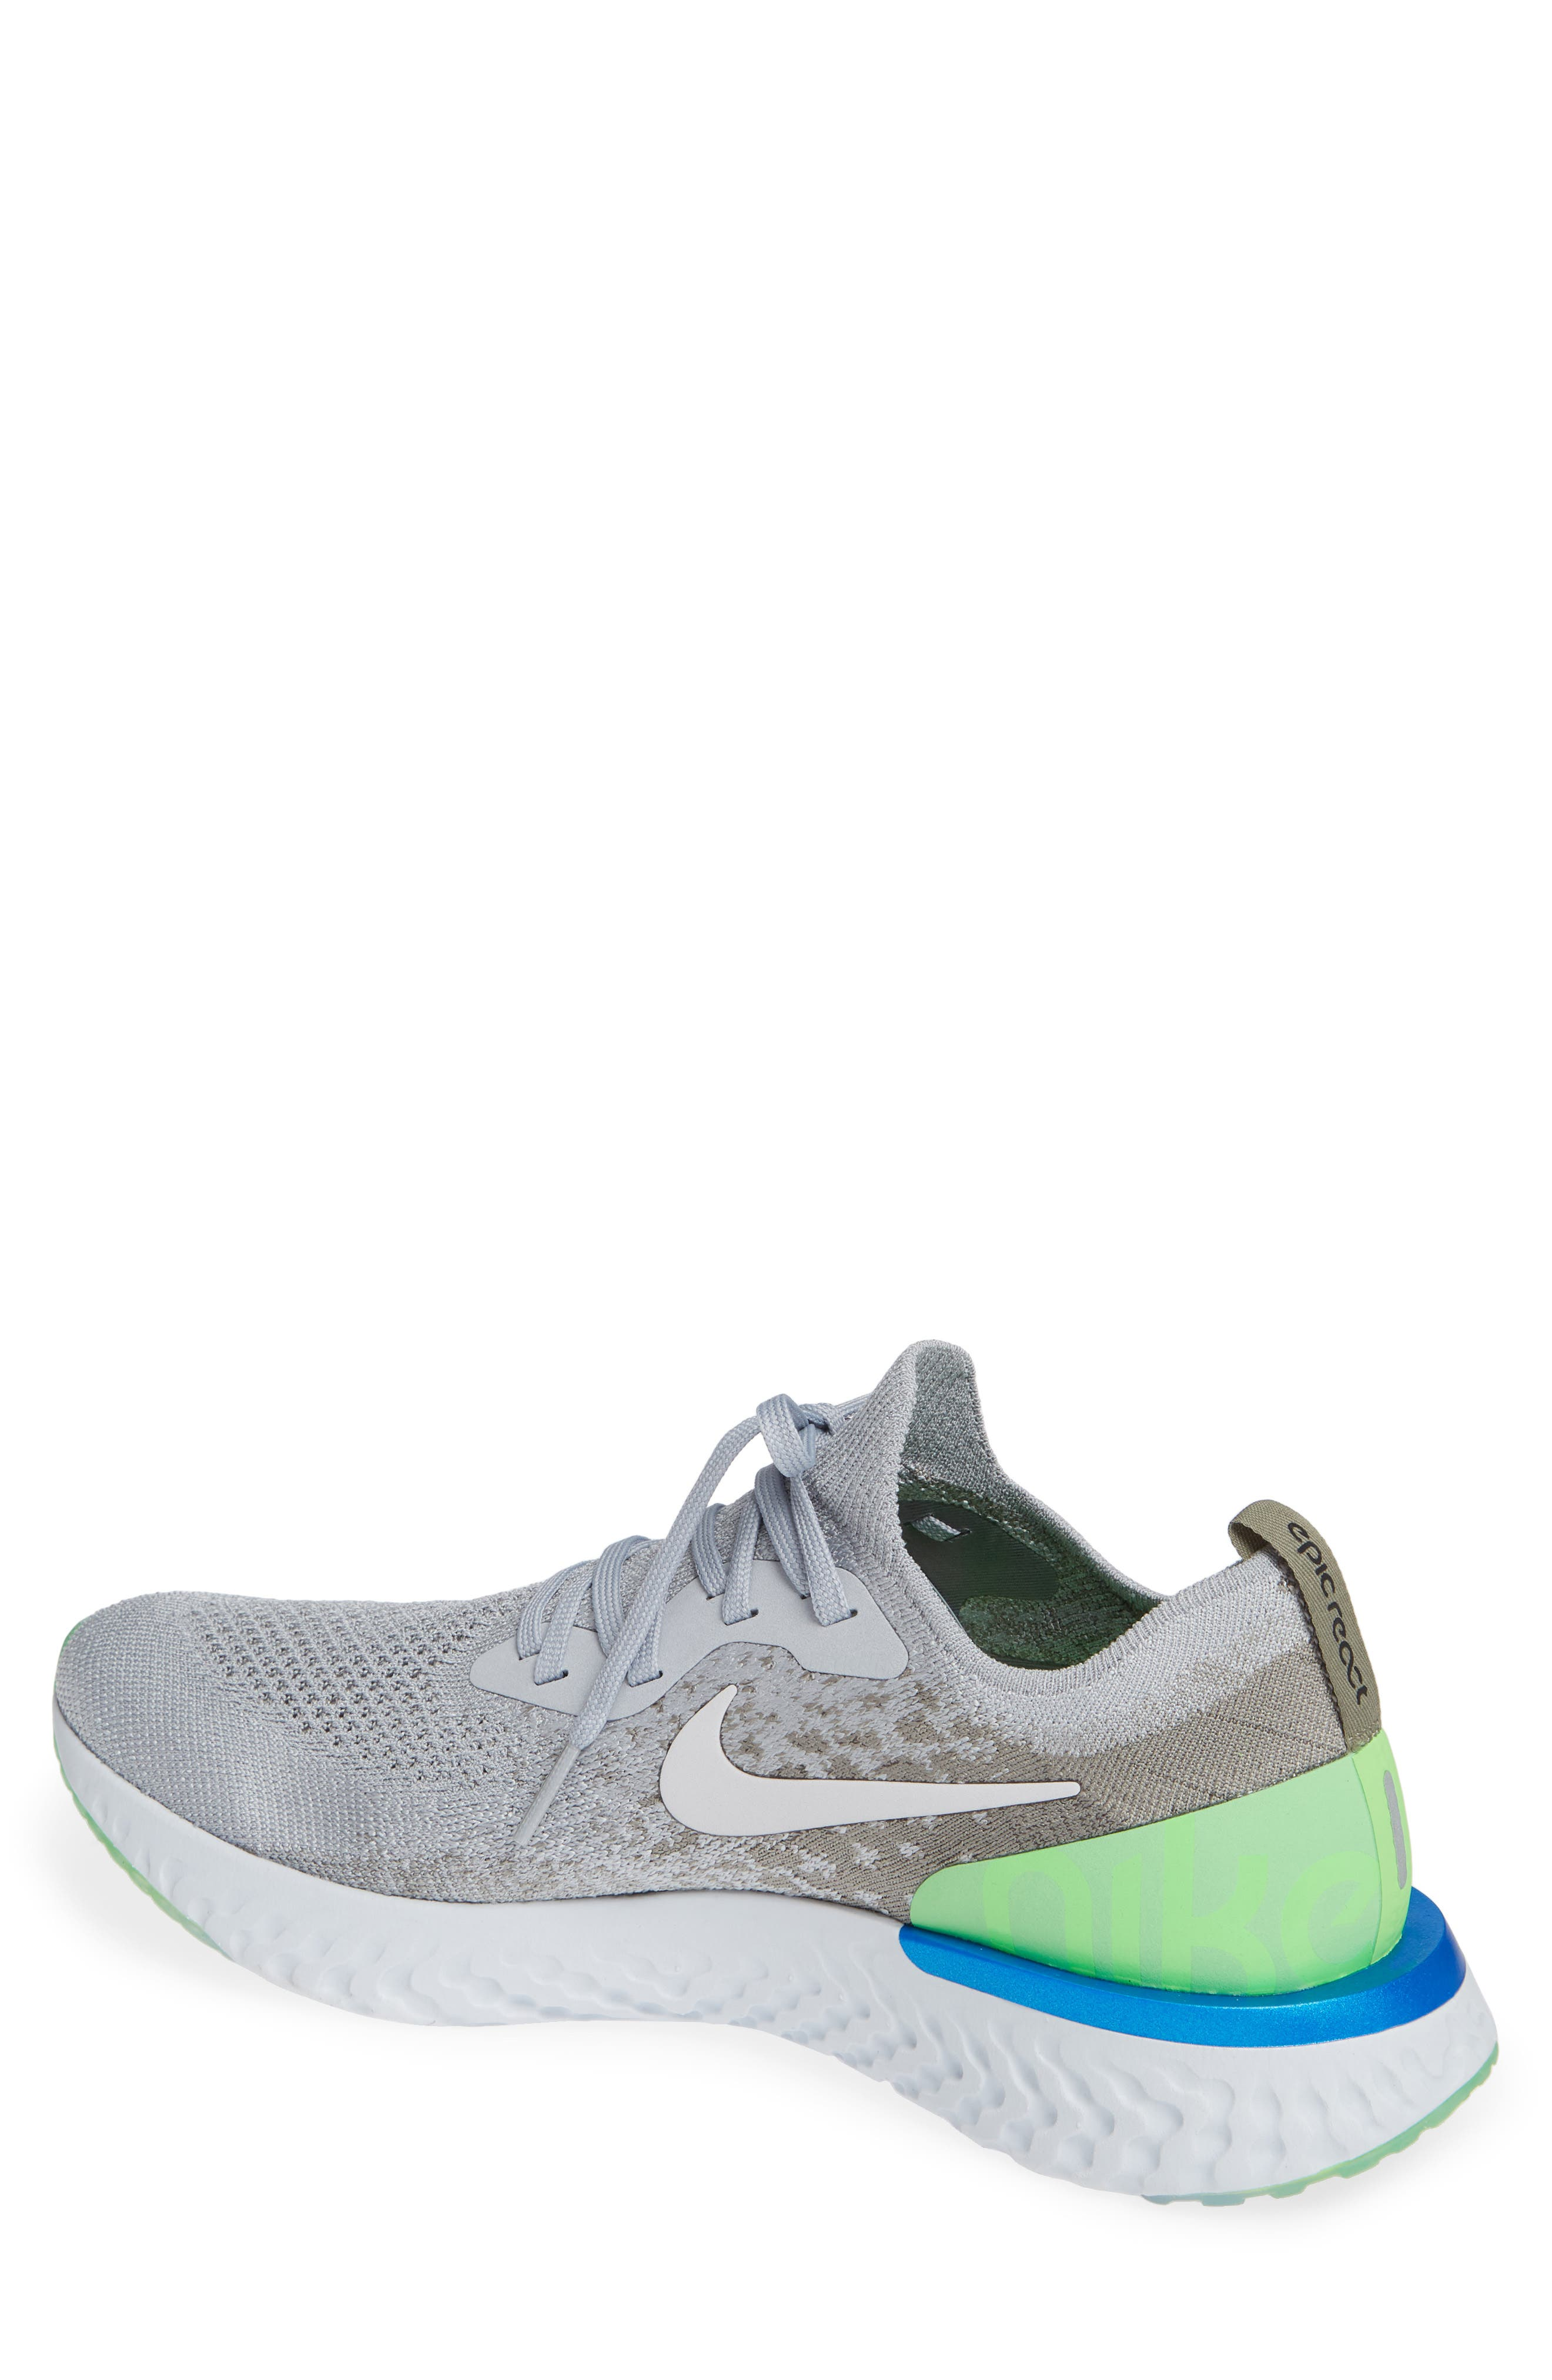 Epic React Flyknit Running Shoe,                             Alternate thumbnail 2, color,                             GREY